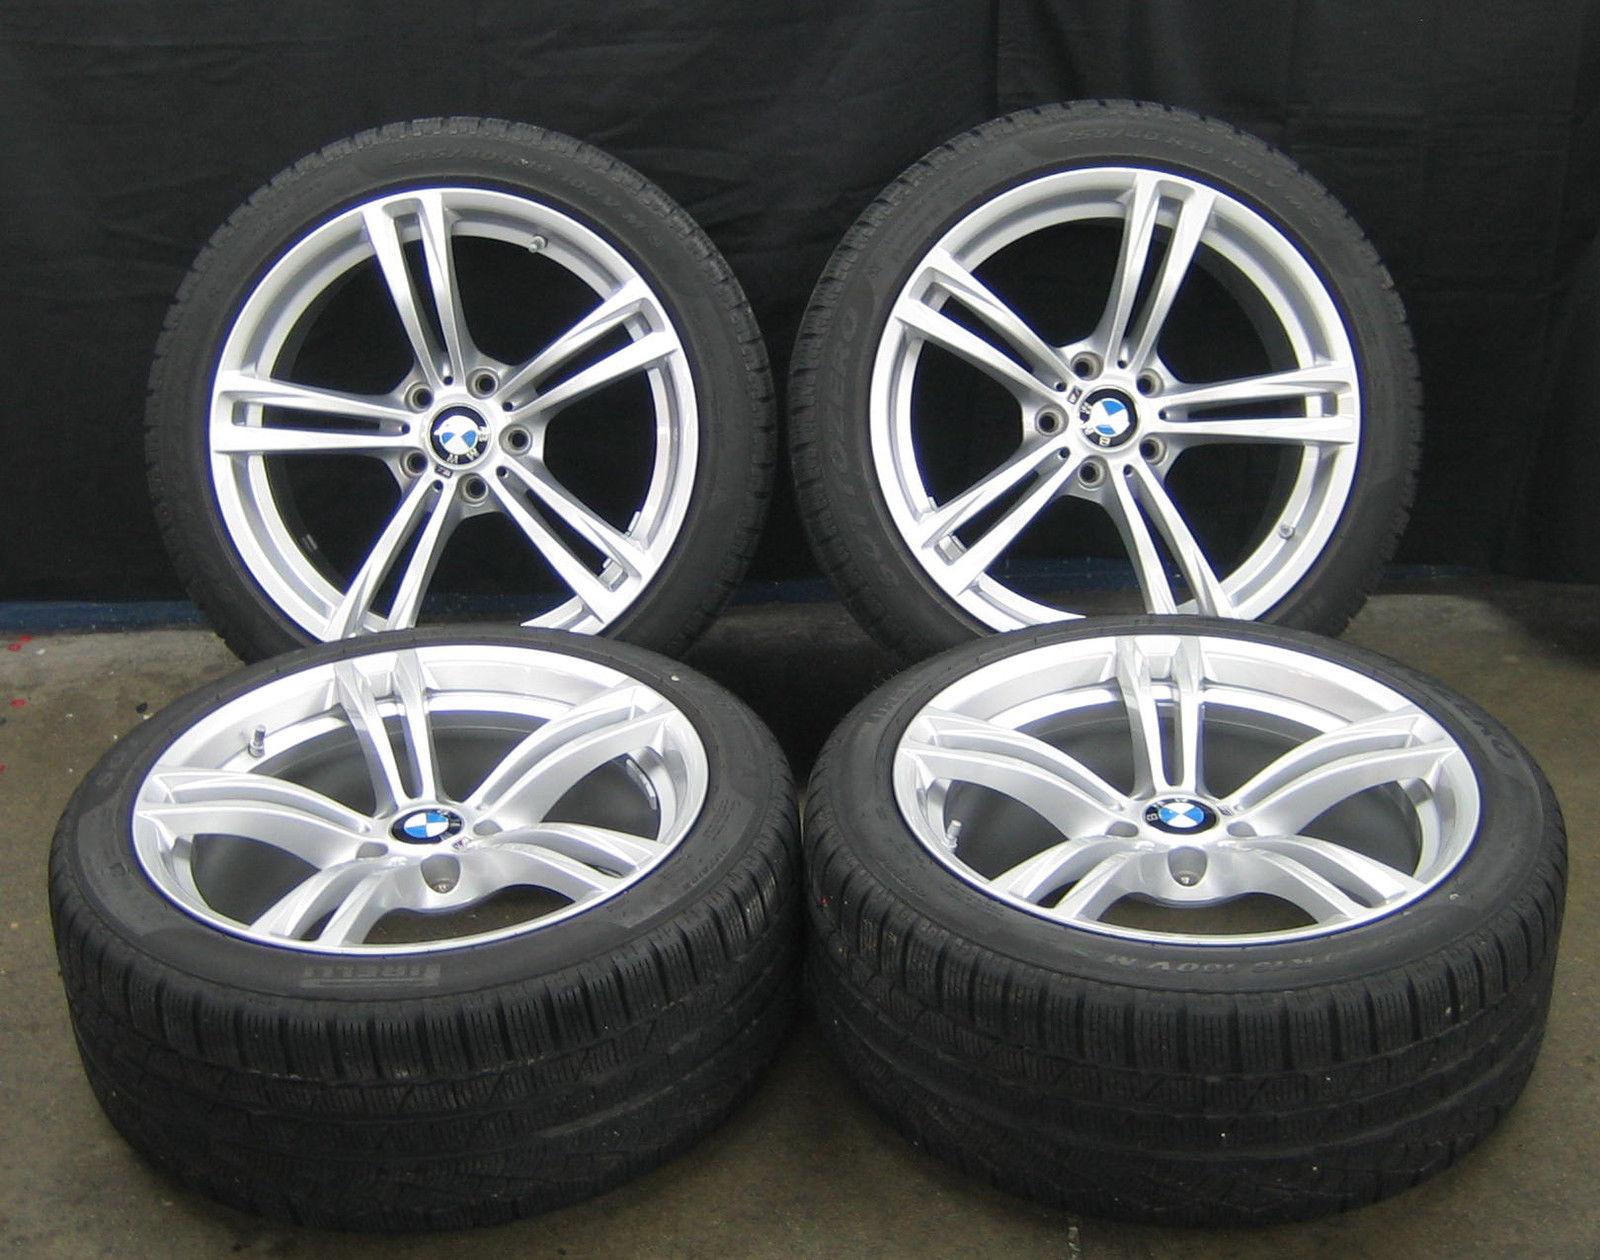 in please bmw at beyern come caps bimmerfest showthread s style rim forums these the wheels so image wheel styles look with put f i rims